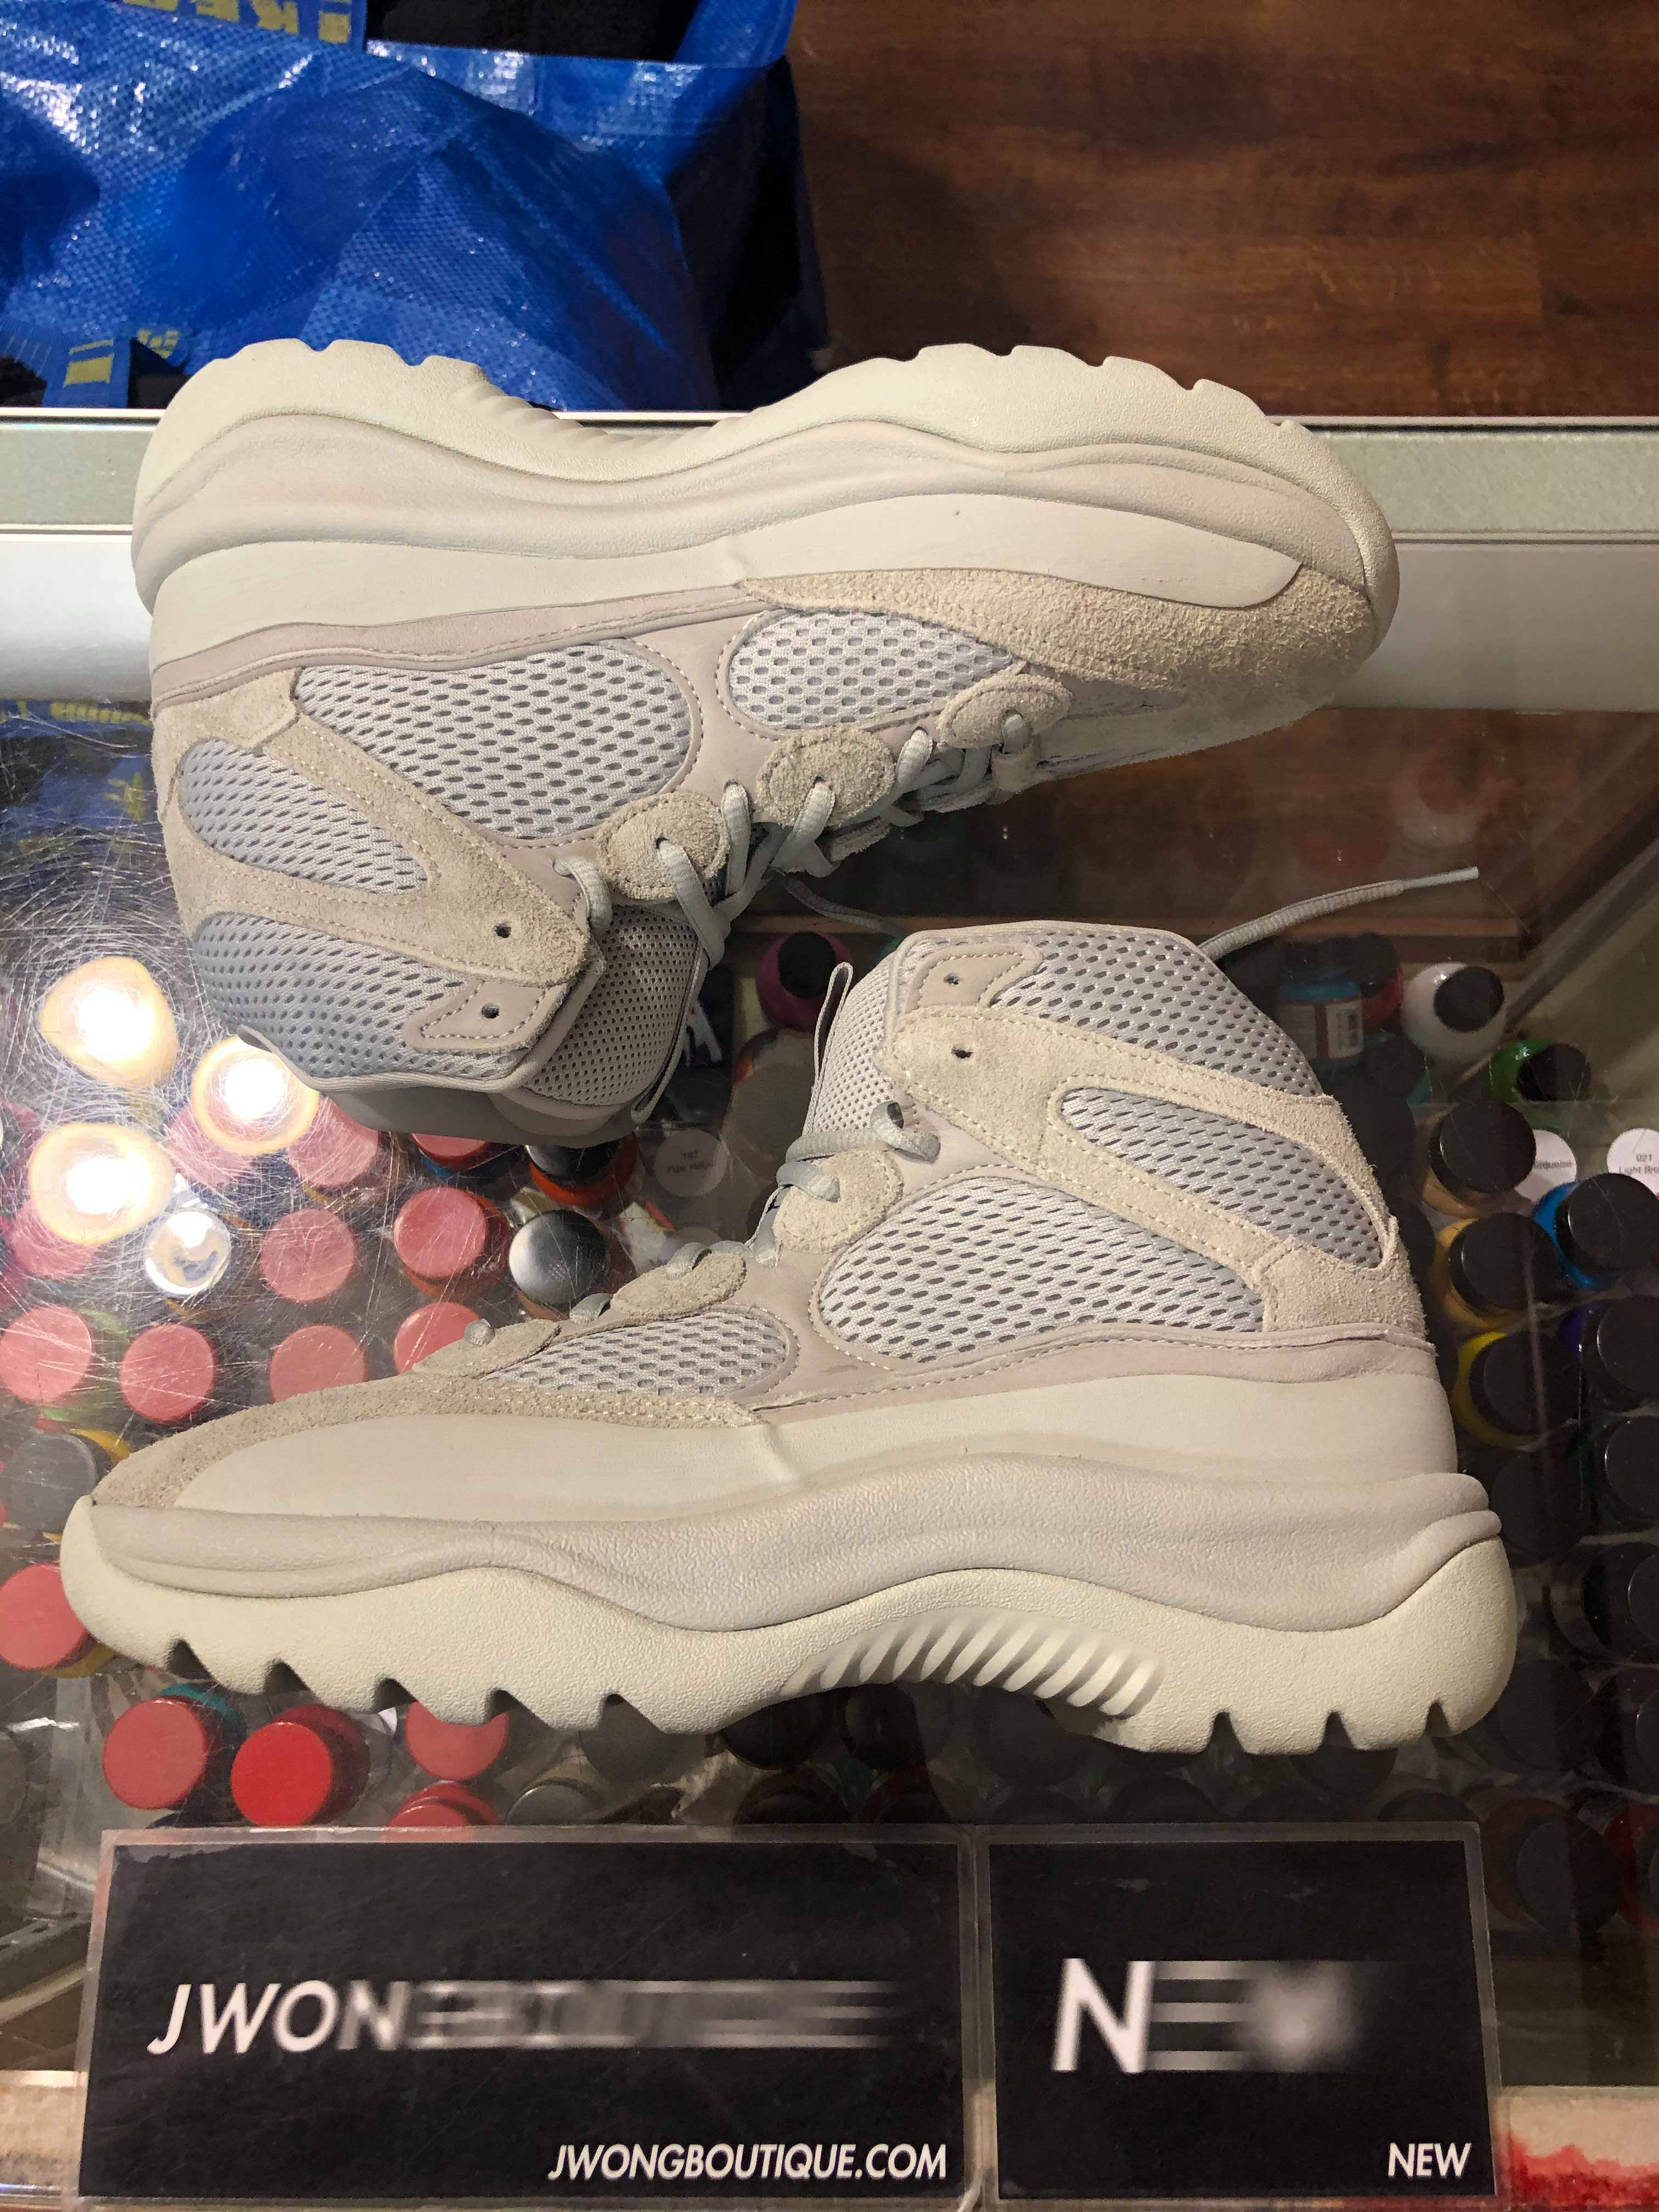 yeezy desert boot box buy clothes shoes